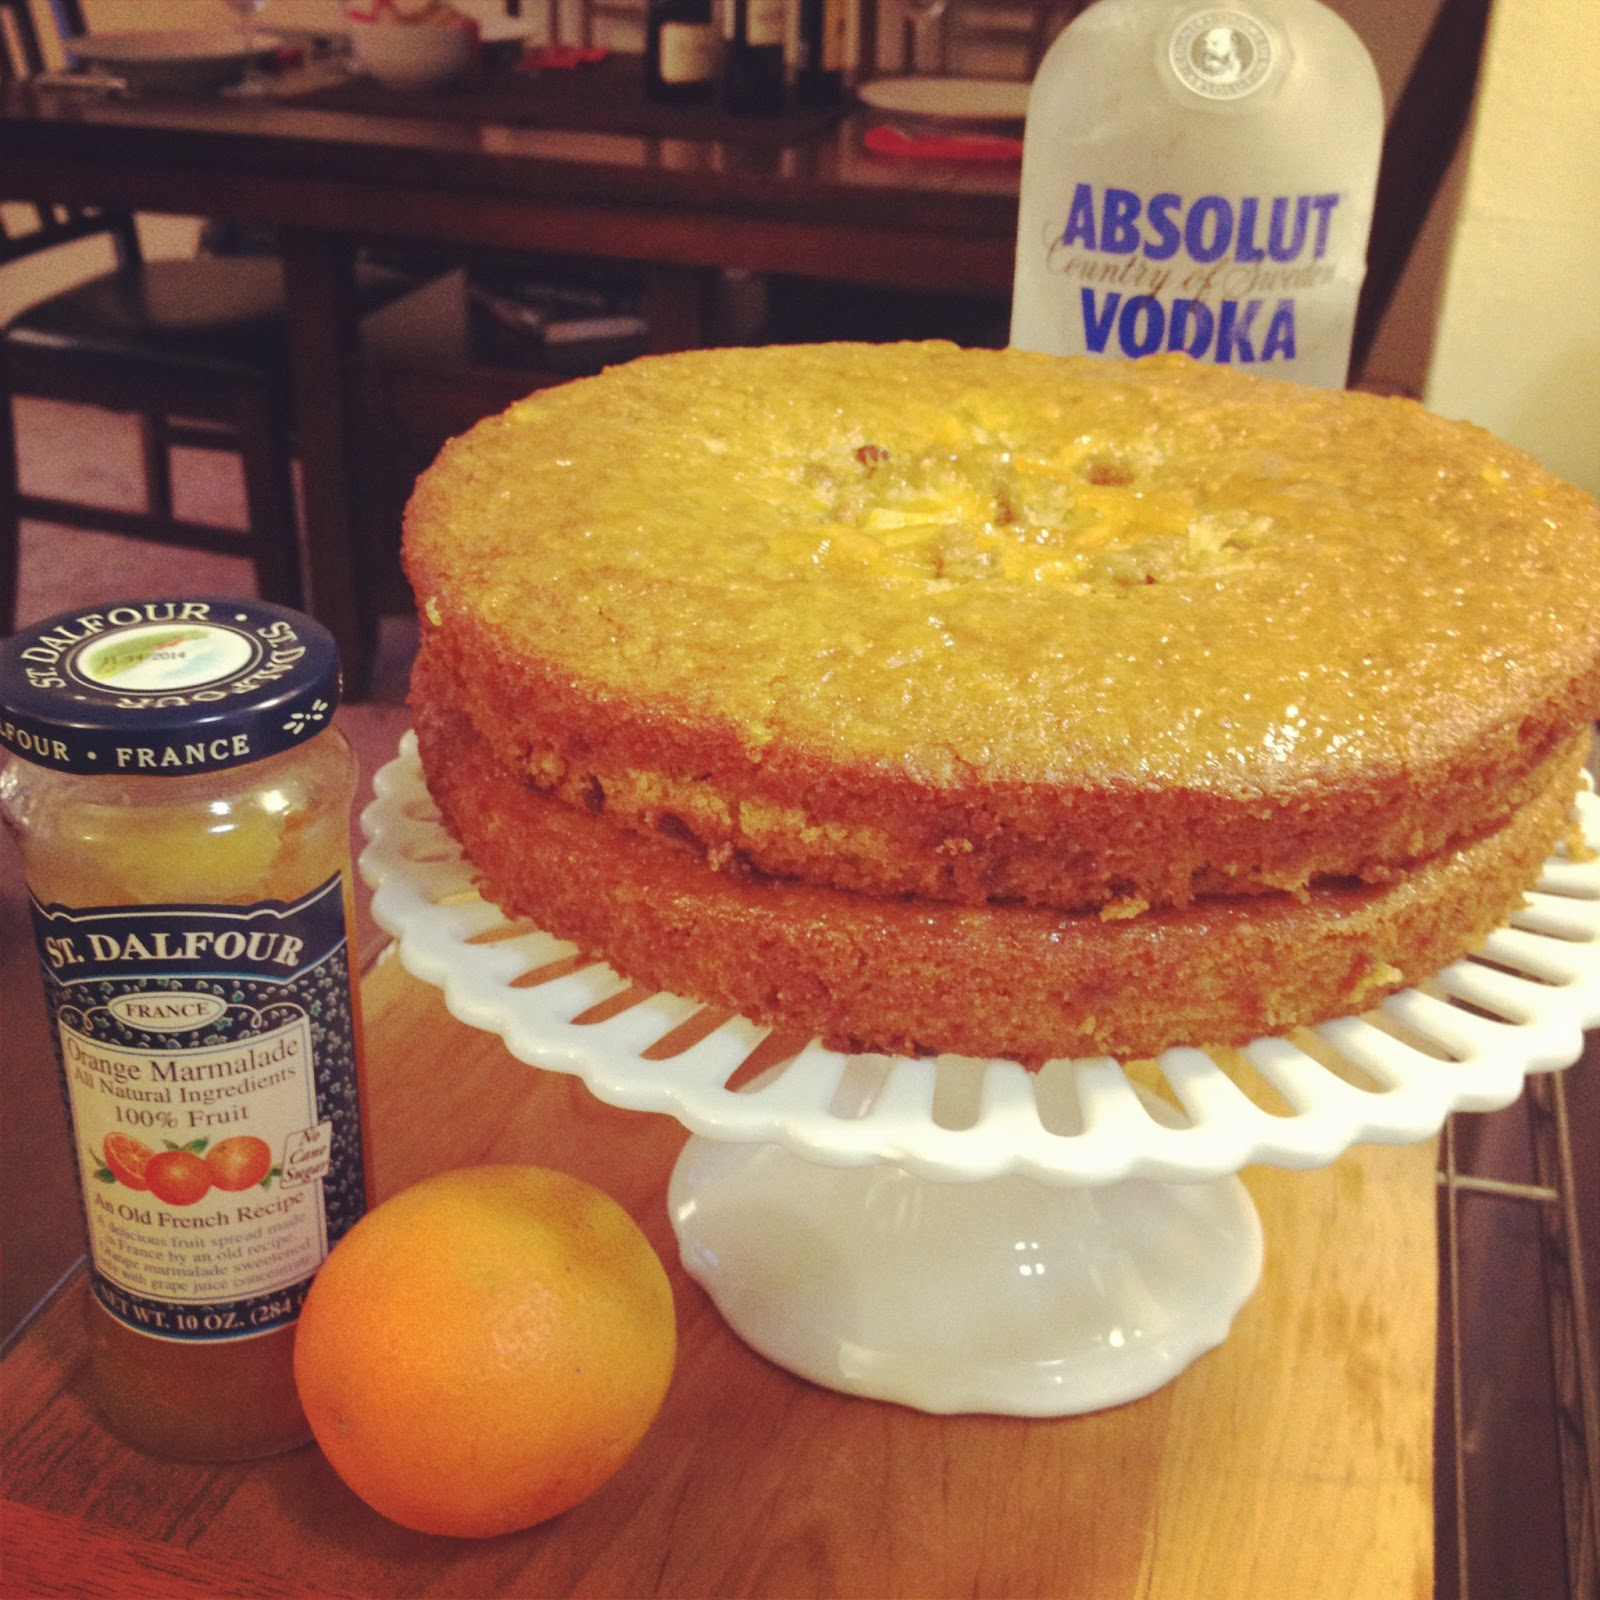 The Lush Chef: Sticky Orange Cake with Vodka & Marmalade Glaze